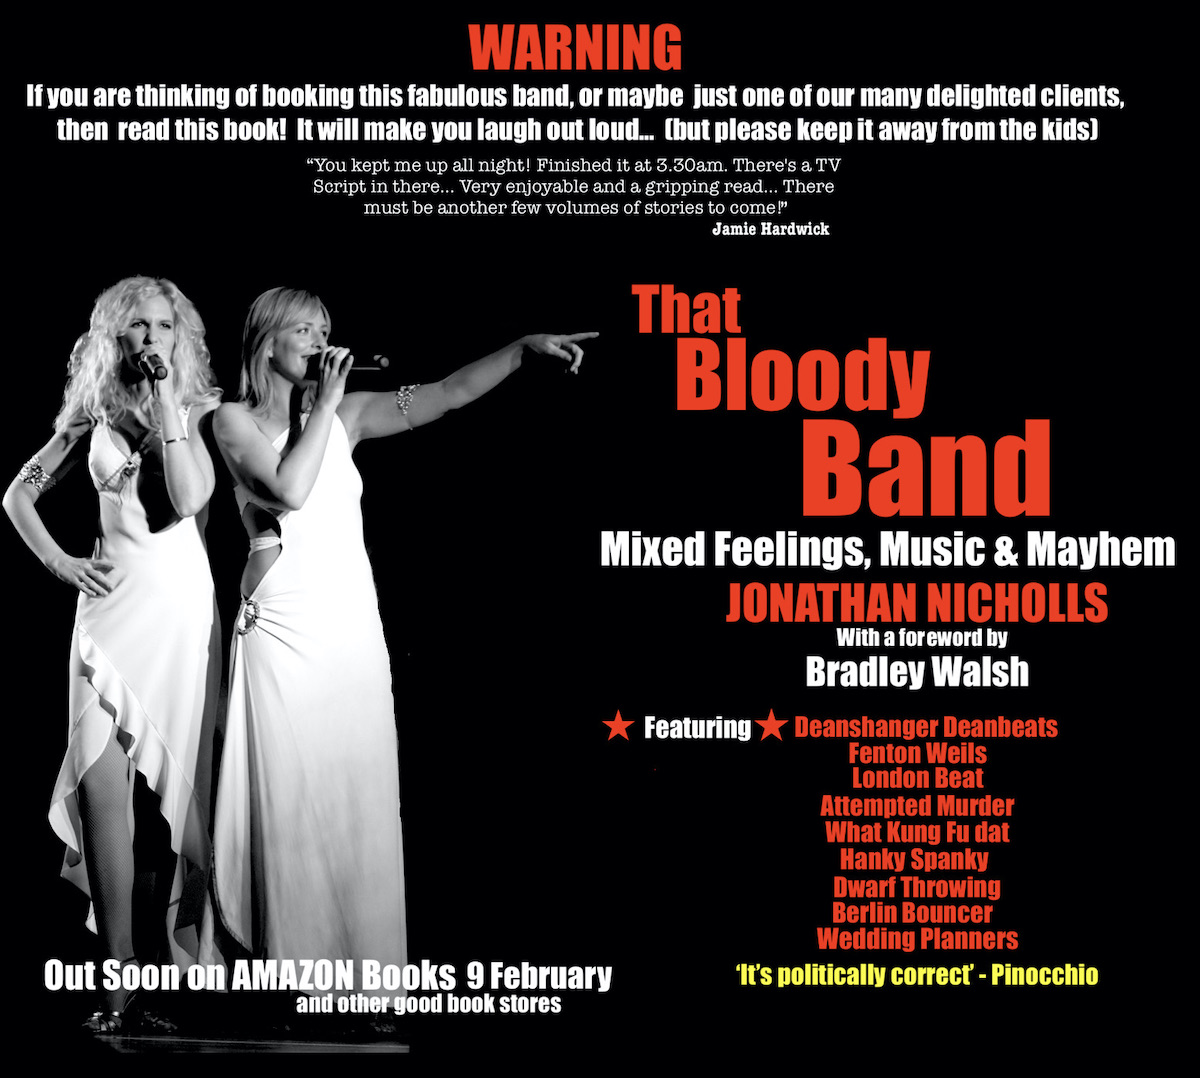 That Bloody Band - The Mixed Feelings Story